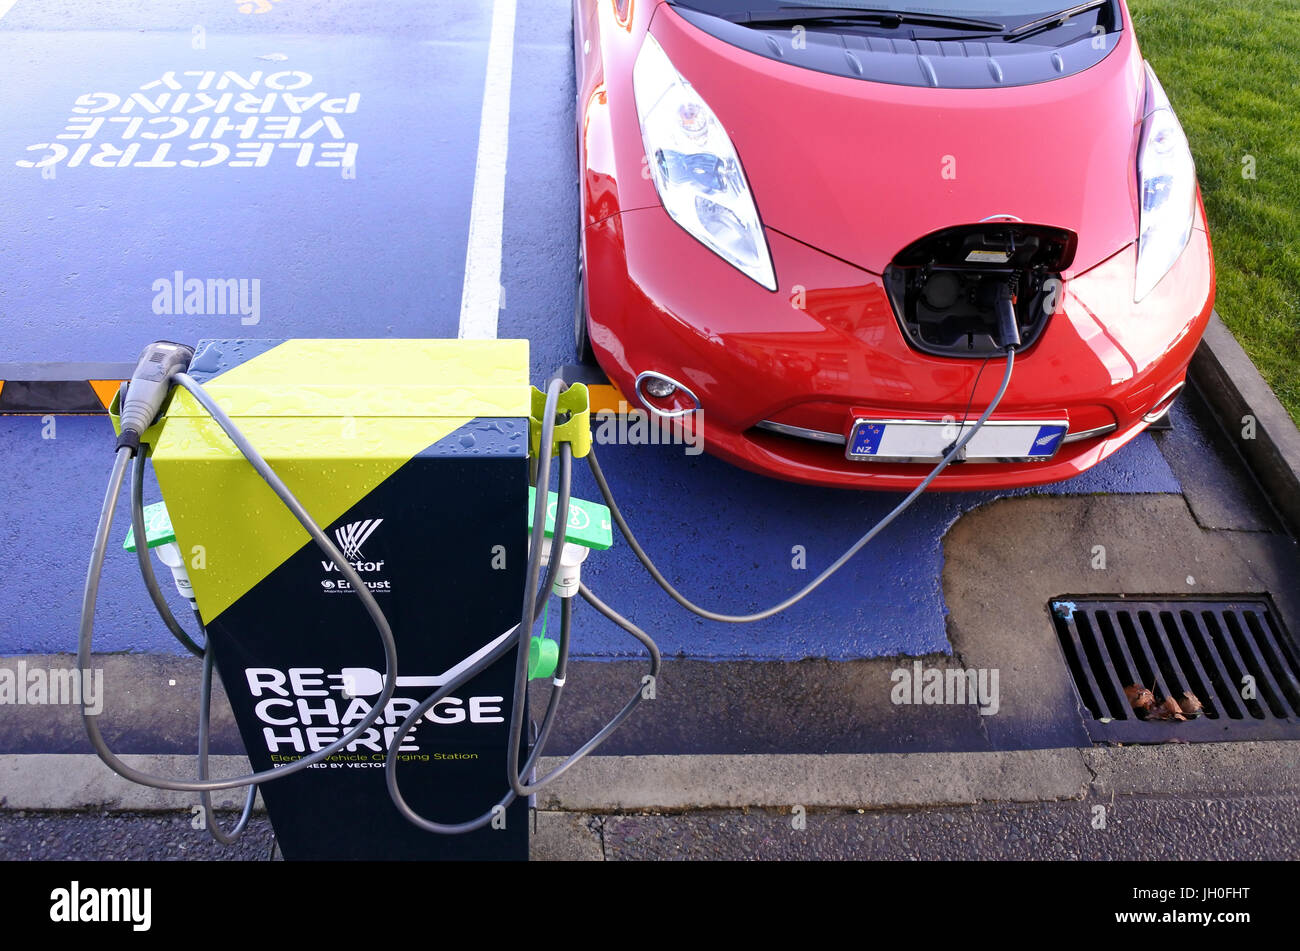 AUCKLAND - JULY 11 2017: Rapid electric vehicle charging stations. On Nov 2016 Vectors networks had 9,095 rapid - Stock Image